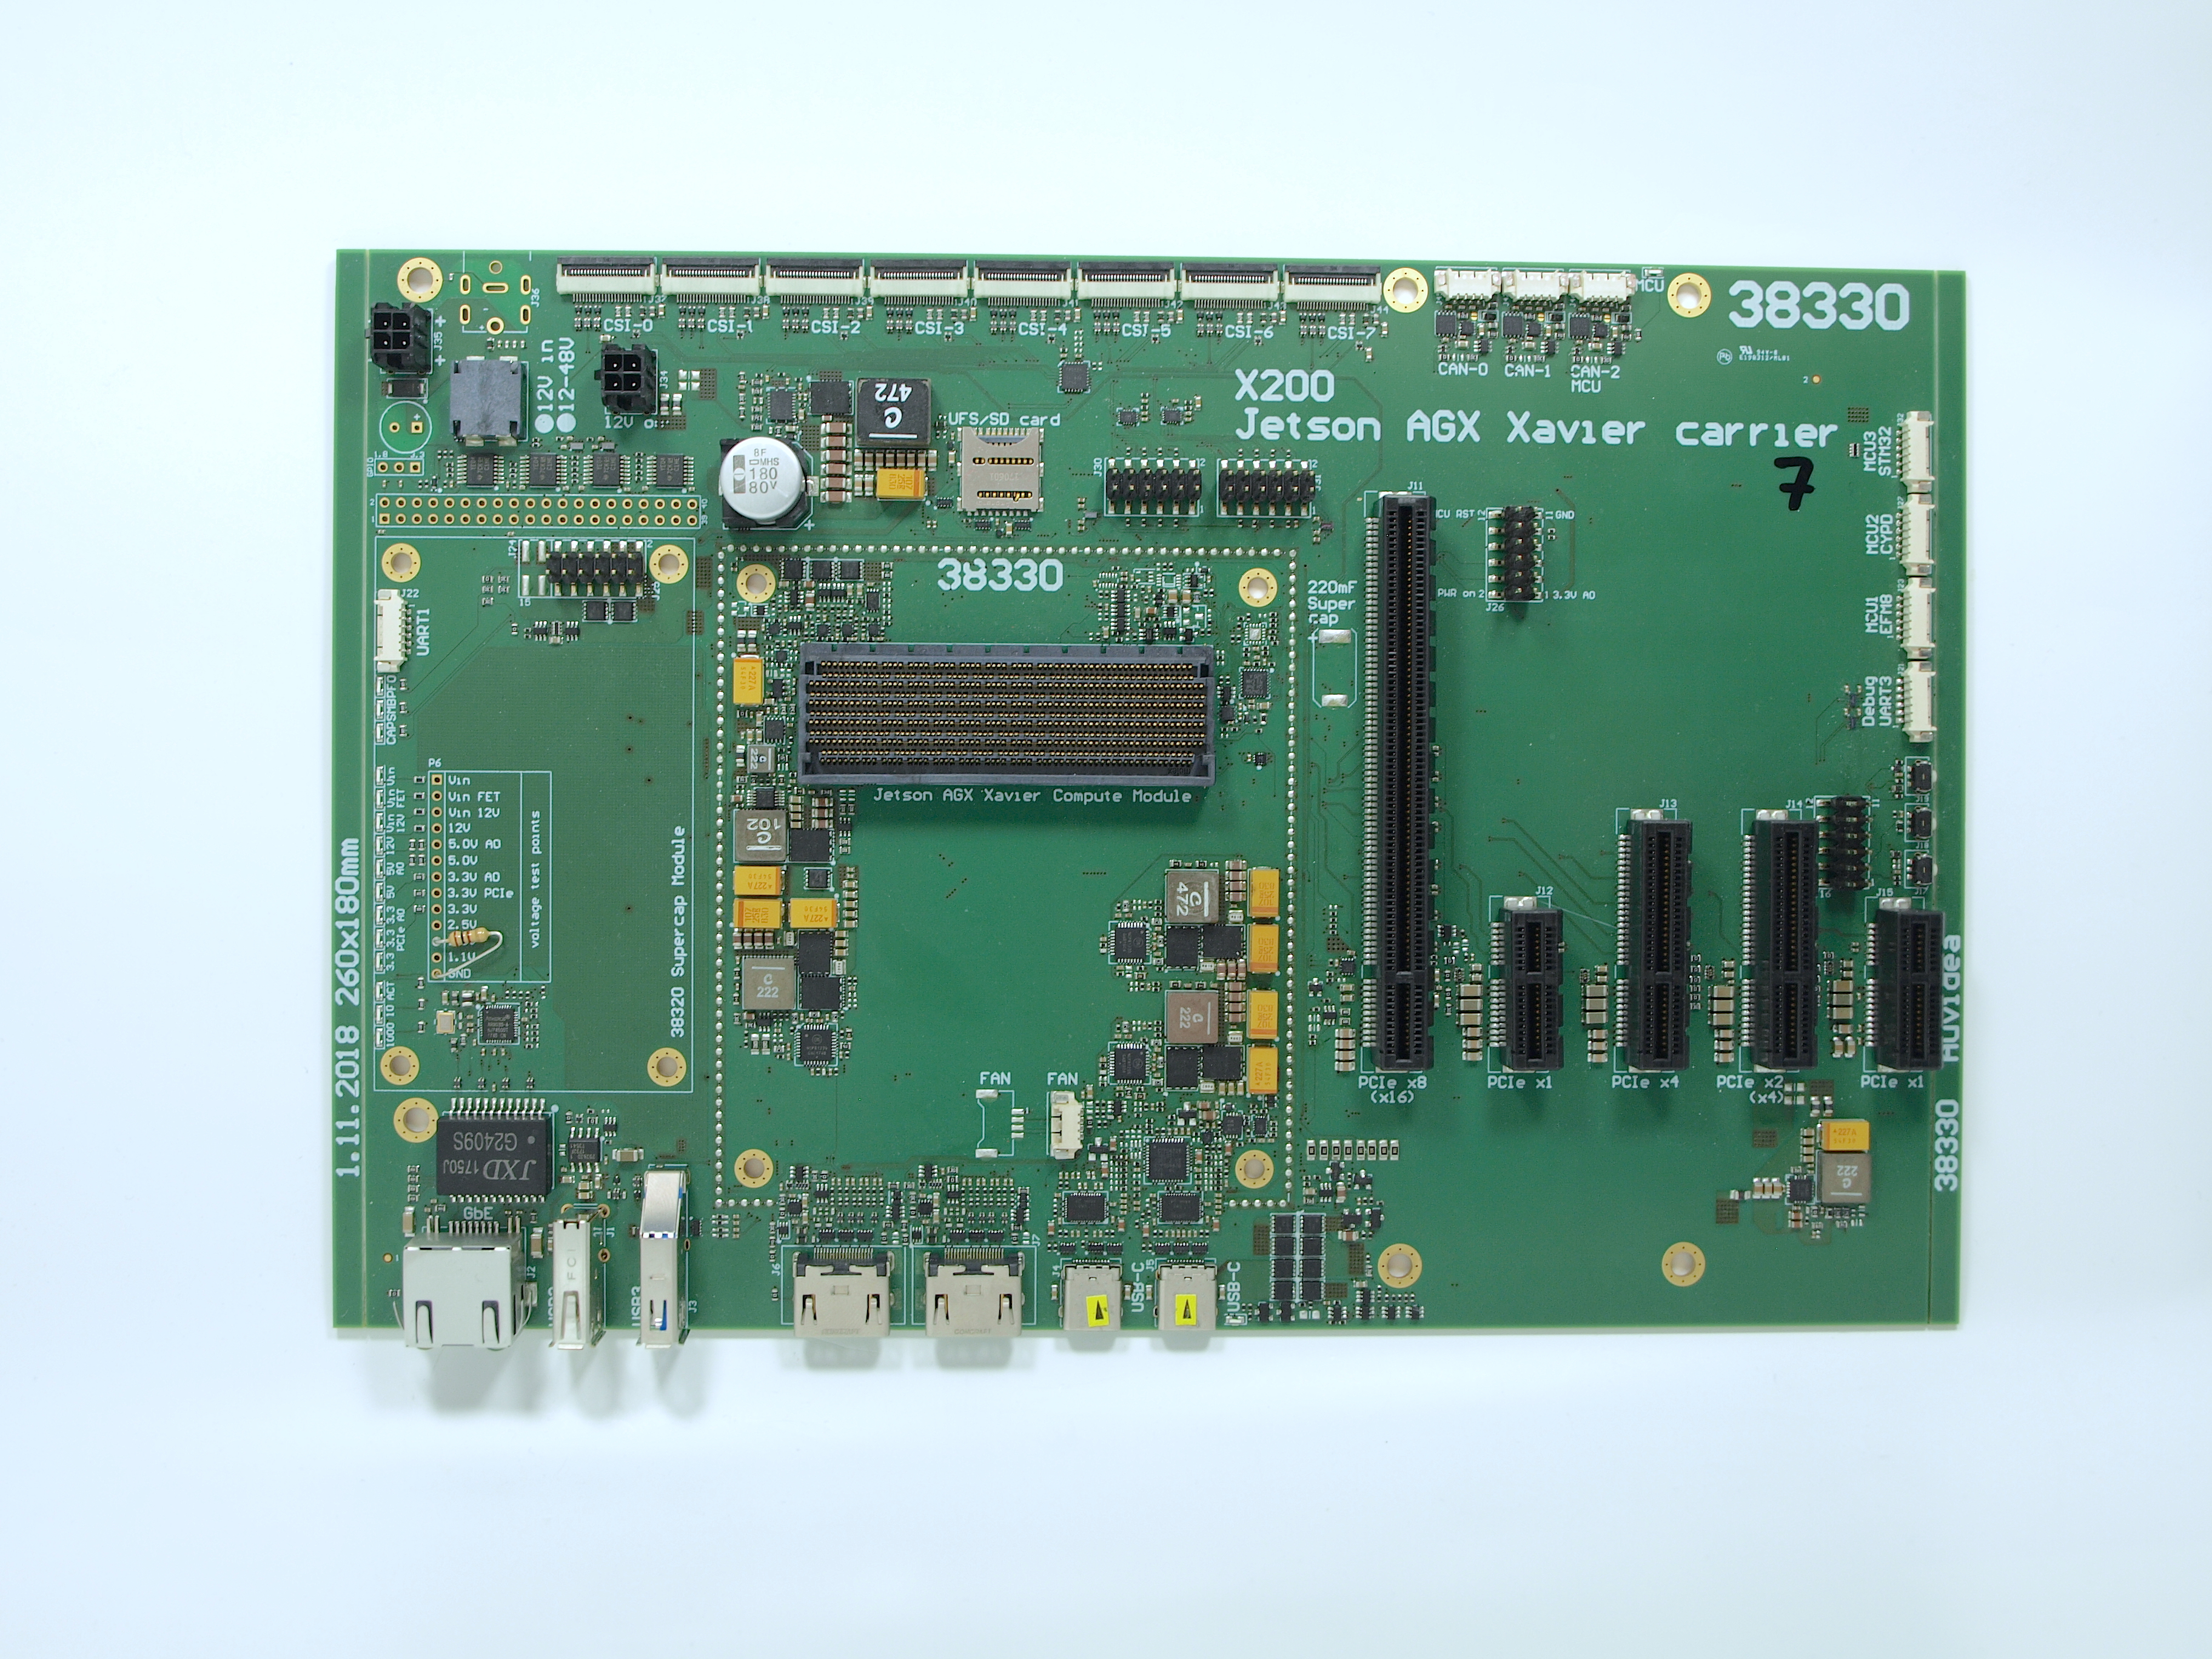 X200 Jetson AGX Xavier carrier board with 5 PCIe slots